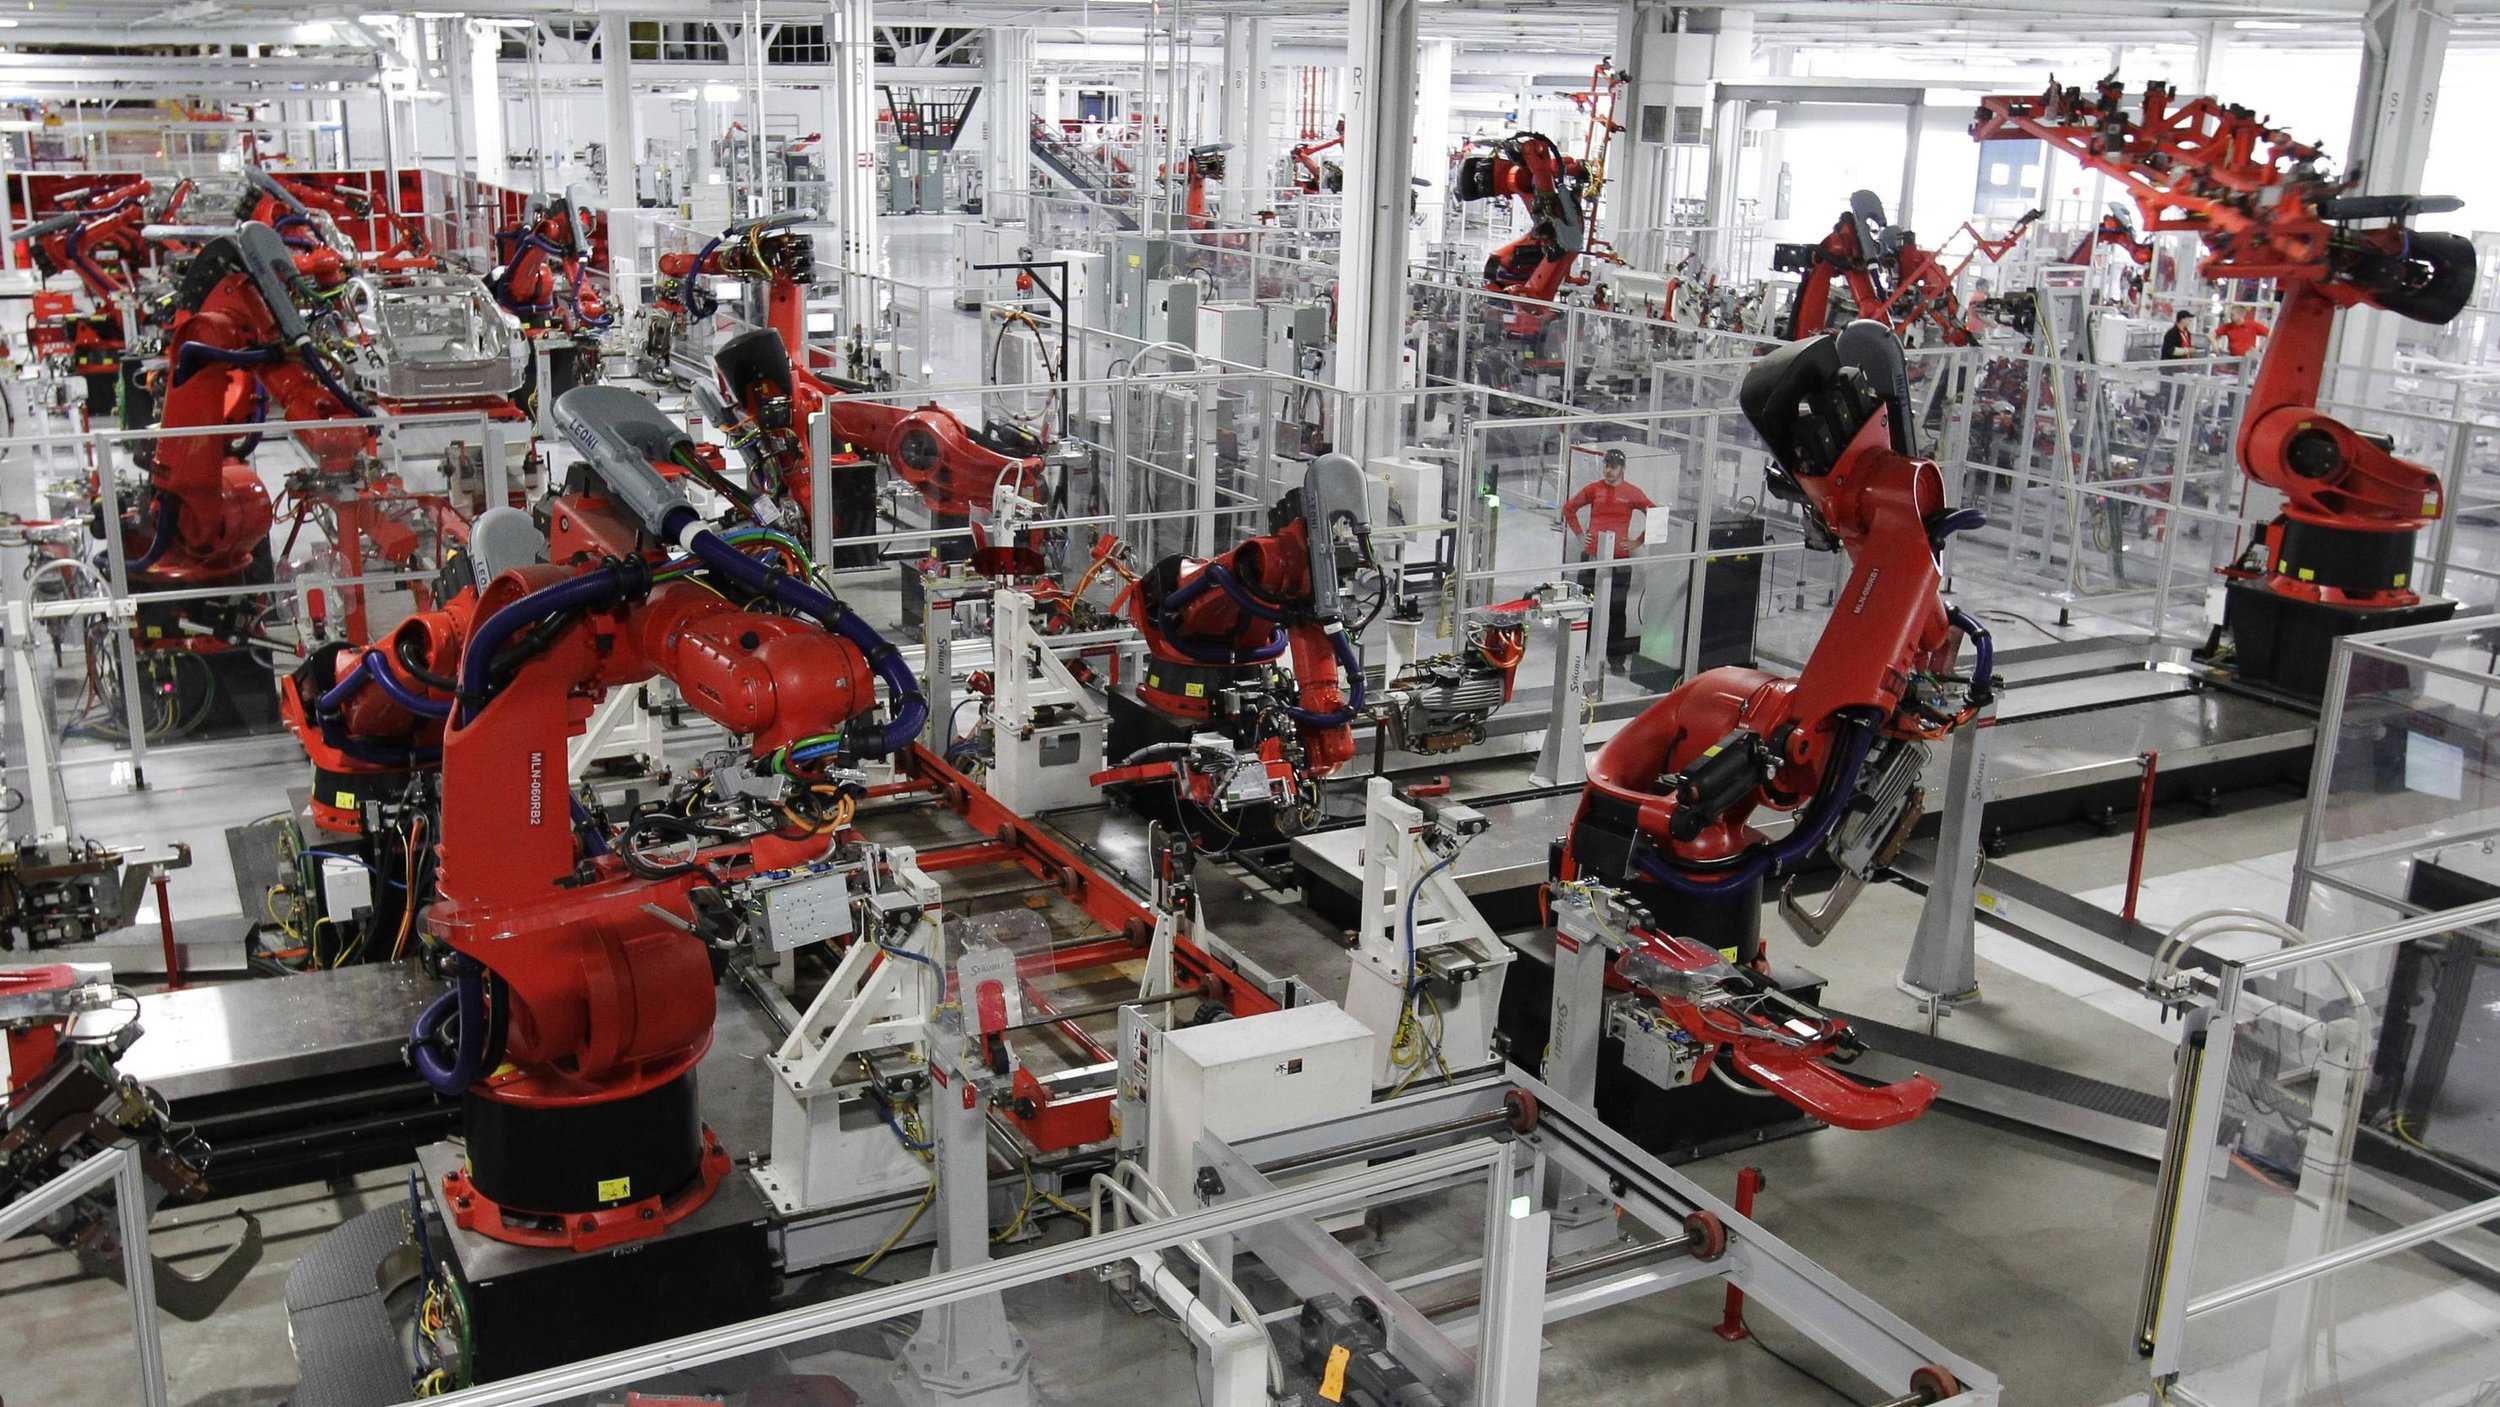 Robots assemble a Tesla Model S at the Tesla factory in Fremont, California. Photo by Paul Sakuma/ AP .